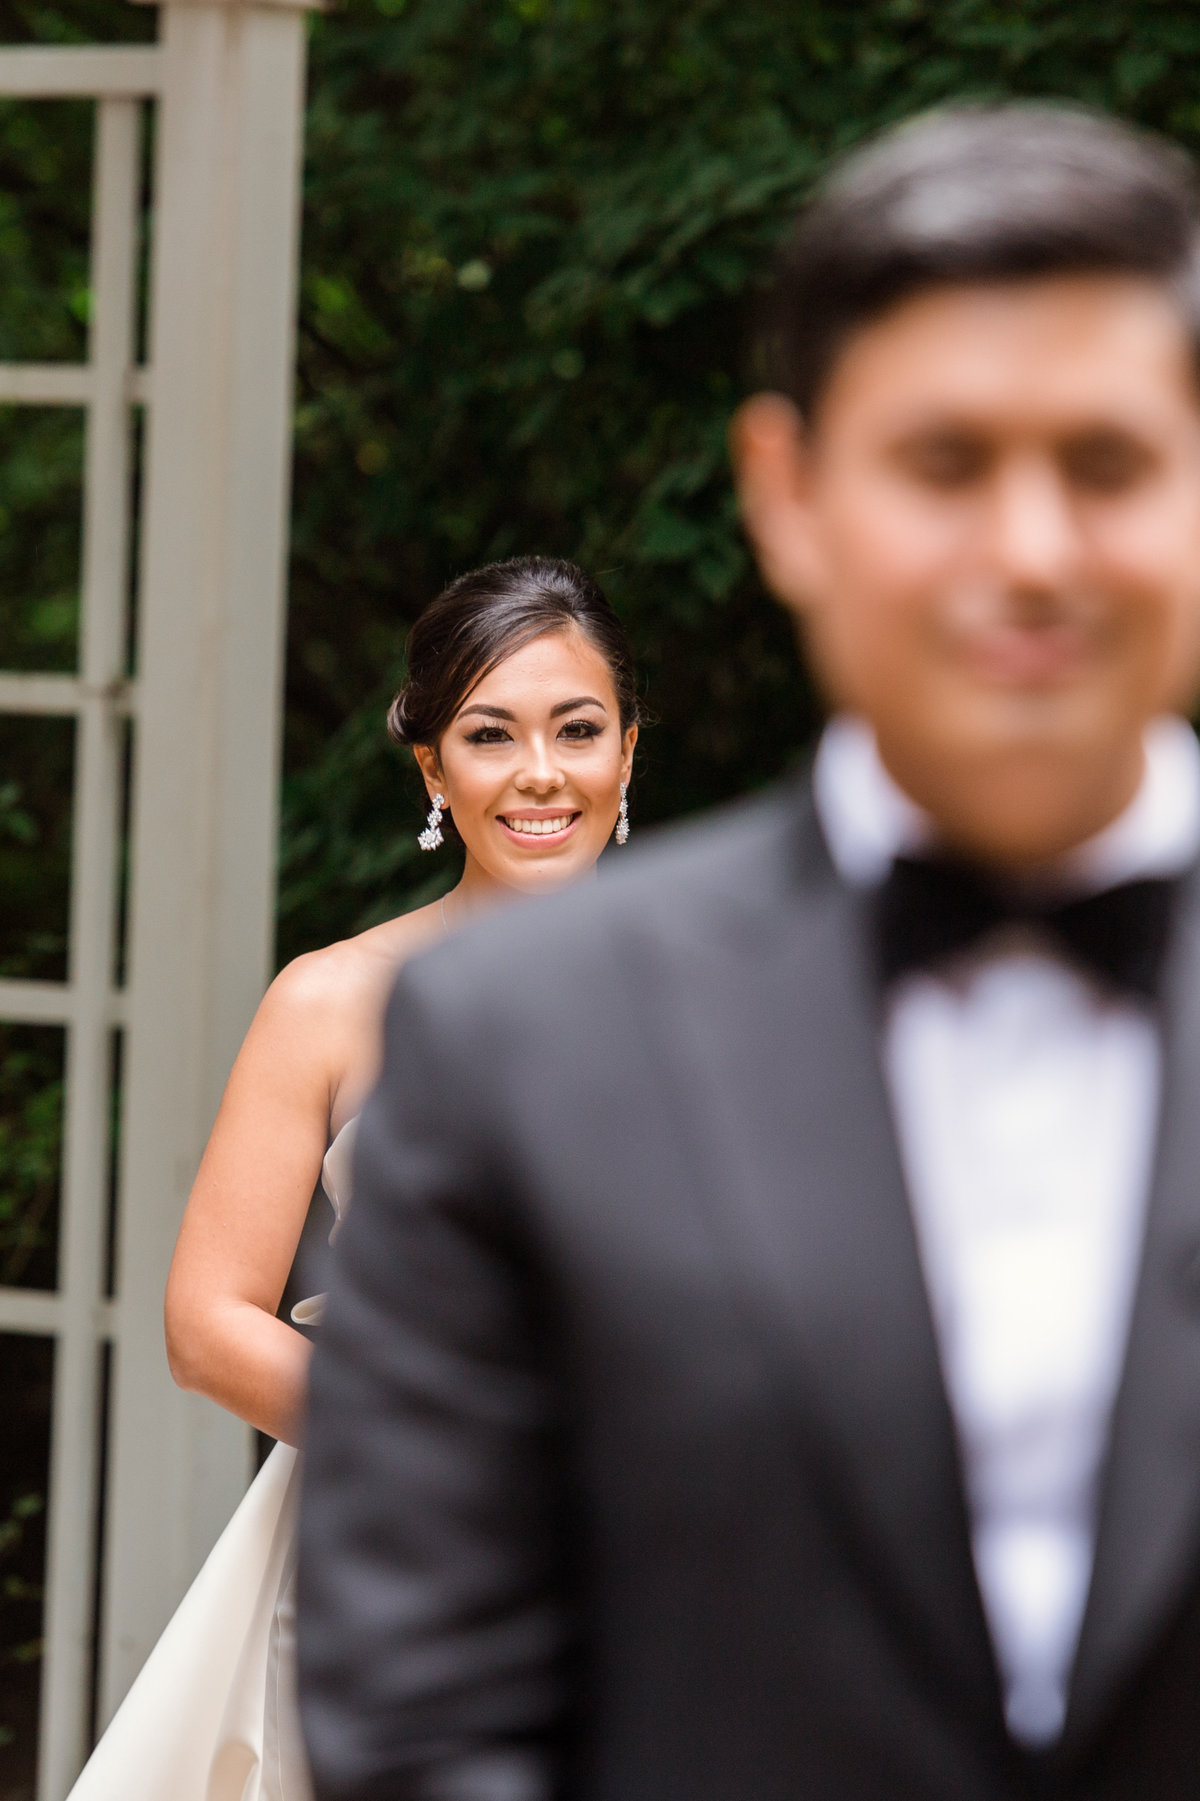 photo of brides smile with groom blurred out before first look during wedding at The Garden City Hotel